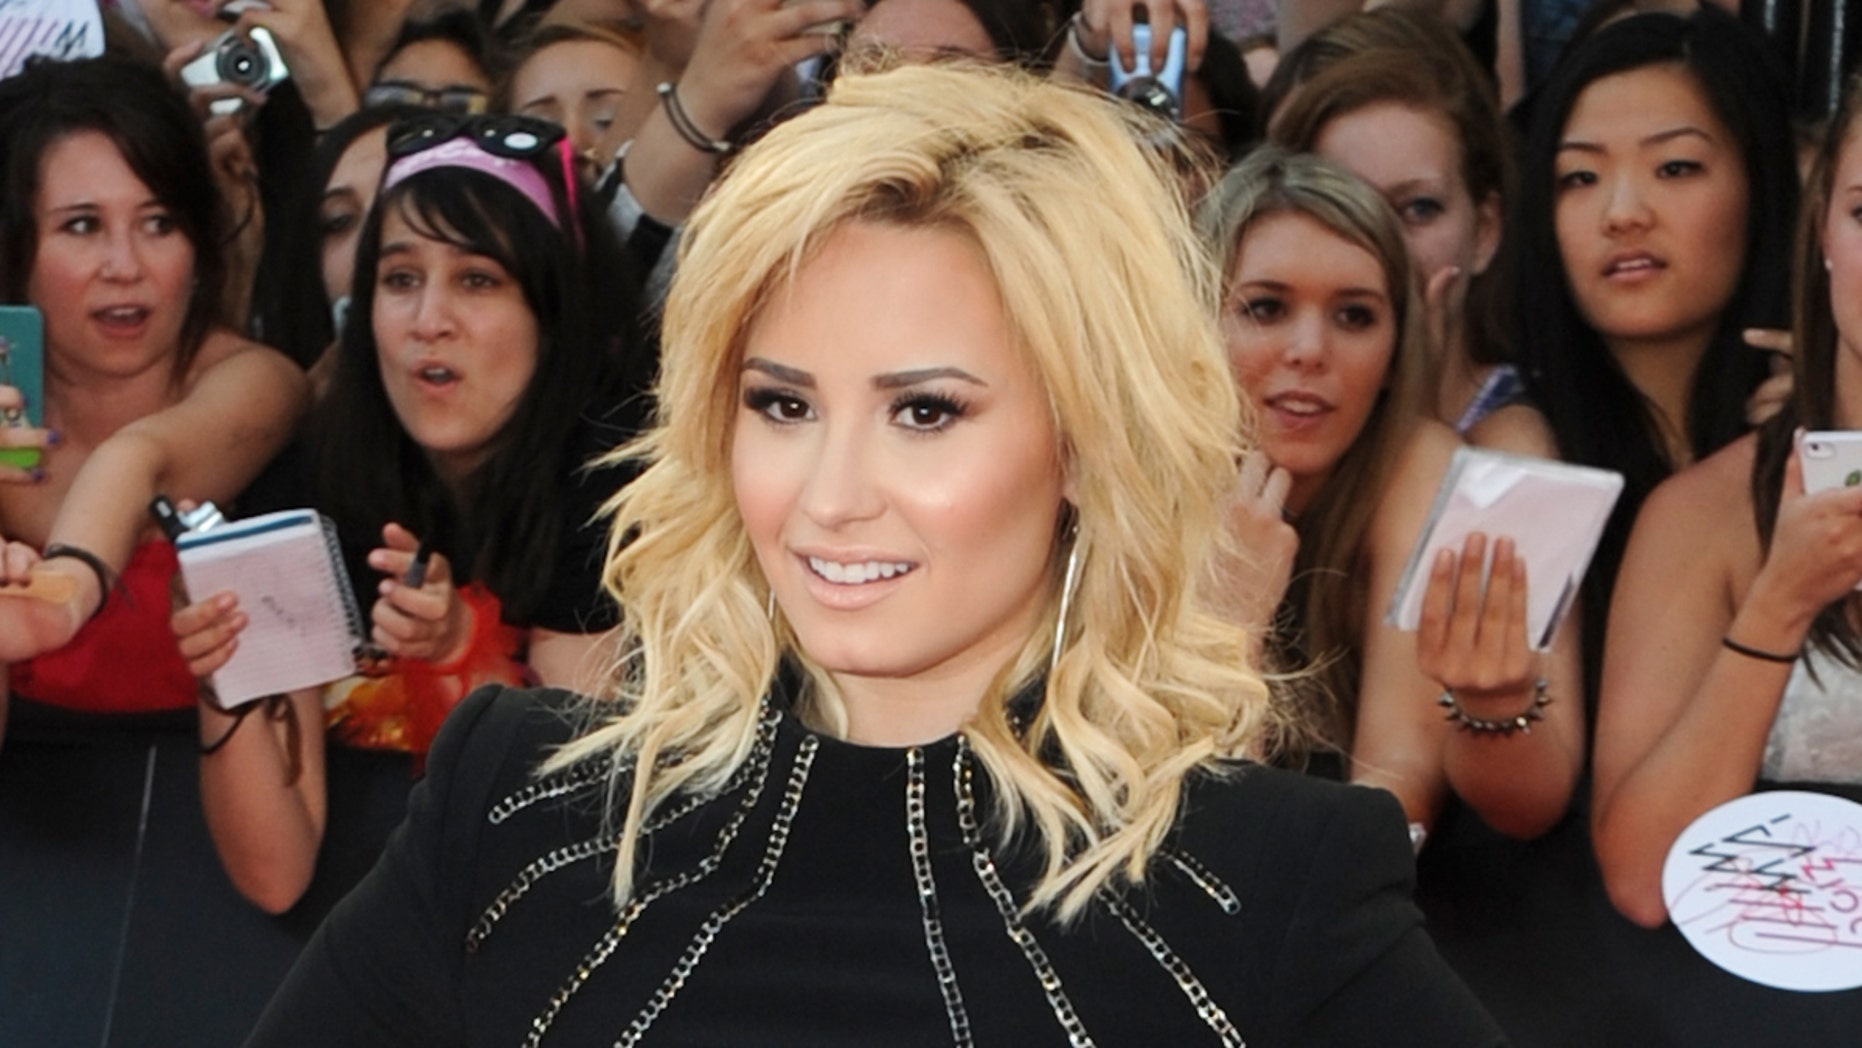 TORONTO, ON - JUNE 16:  Demi Lovato  arrives on the red carpet at the 2013 MuchMusic Video Awards at Bell Media Headquarters on June 16, 2013 in Toronto, Canada.  (Photo by Jag Gundu/Getty Images)